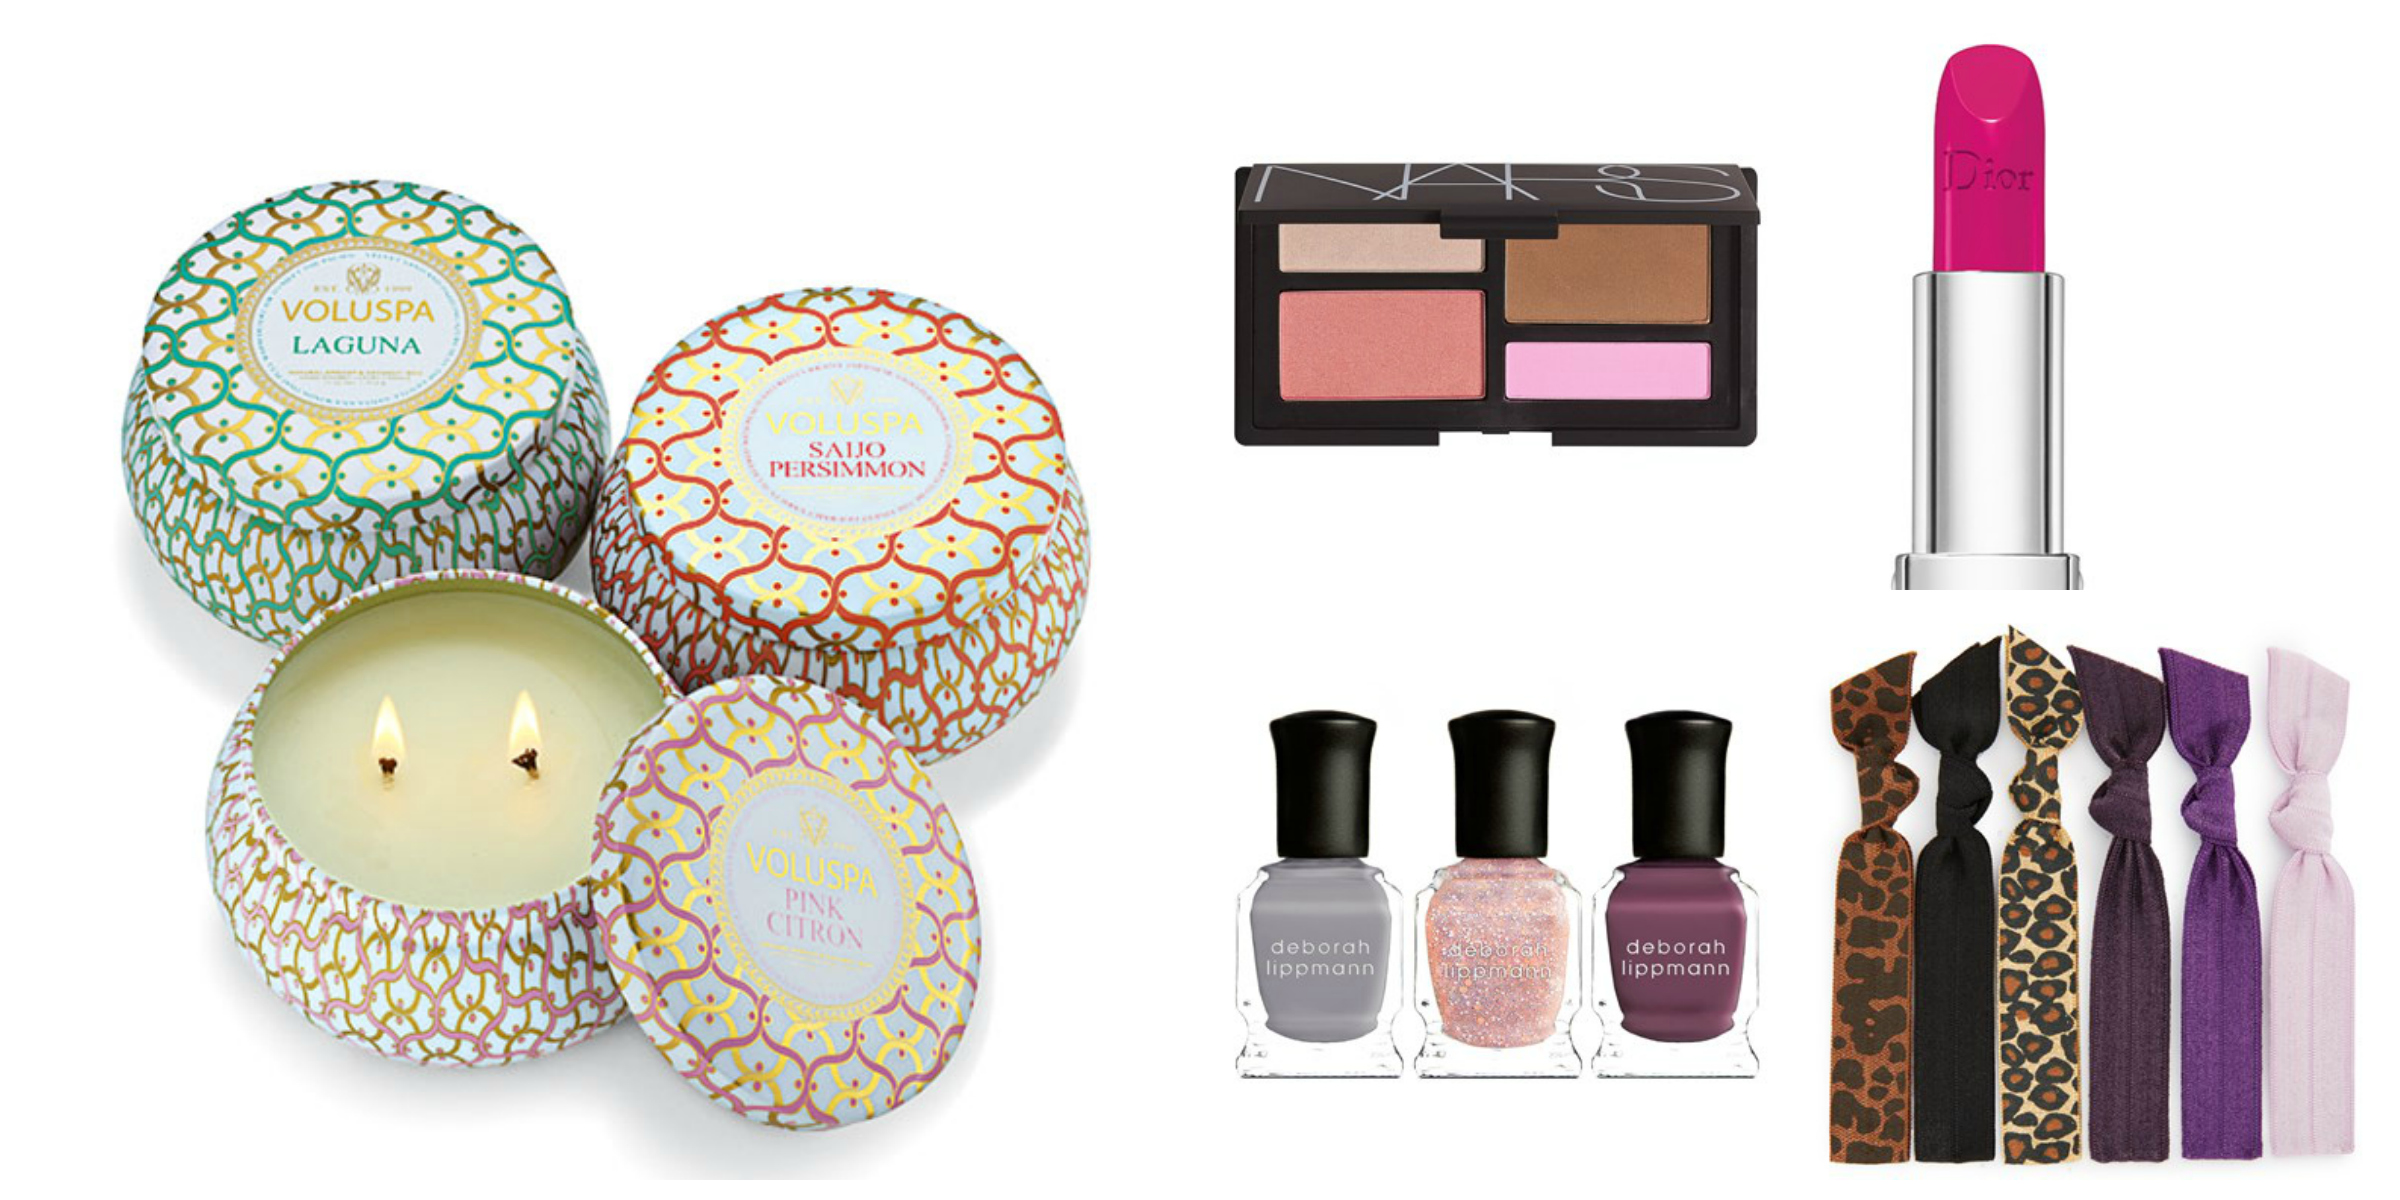 The best beauty picks from the Nordstrom Anniversary sale